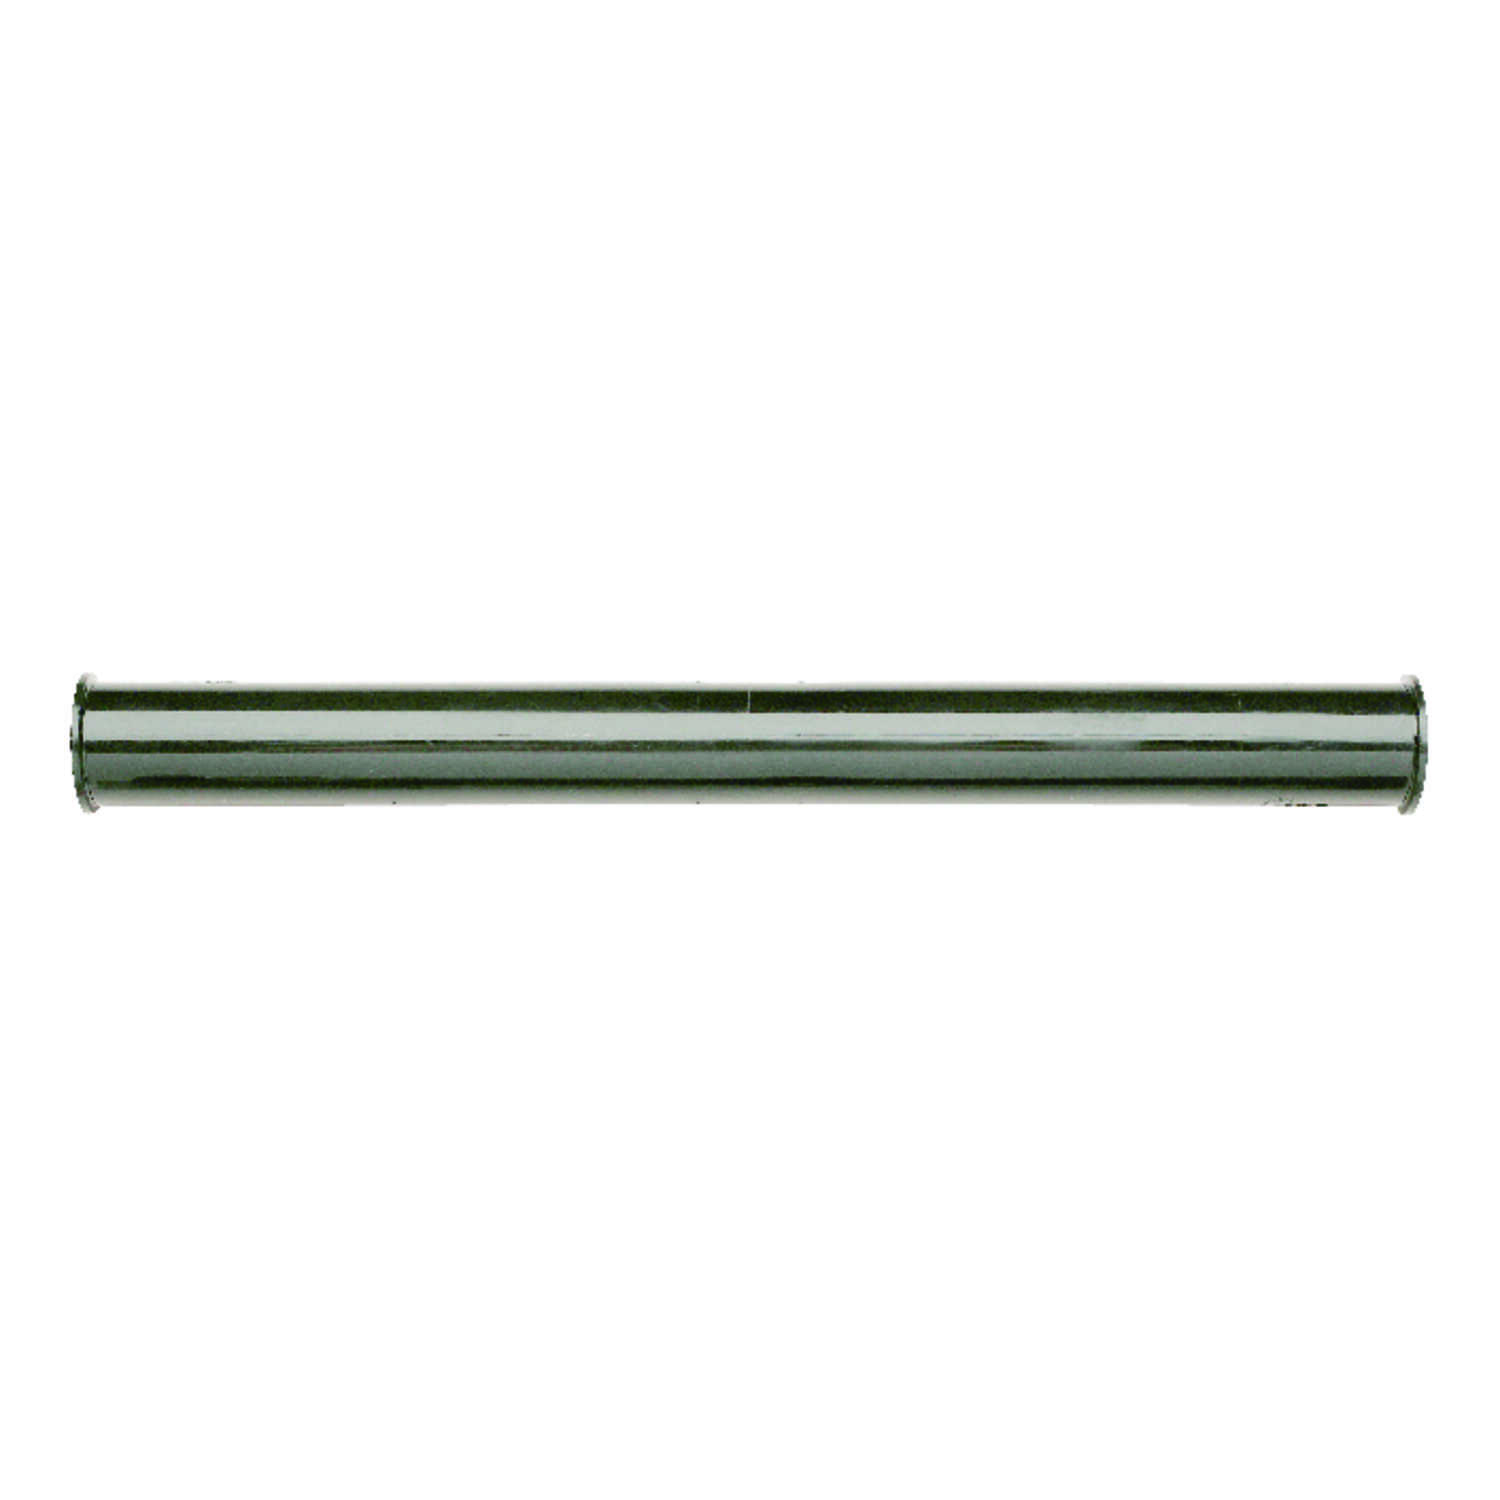 Ace  1-1/2 in. Dia. x 16 in. L Polypropylene  Tailpiece